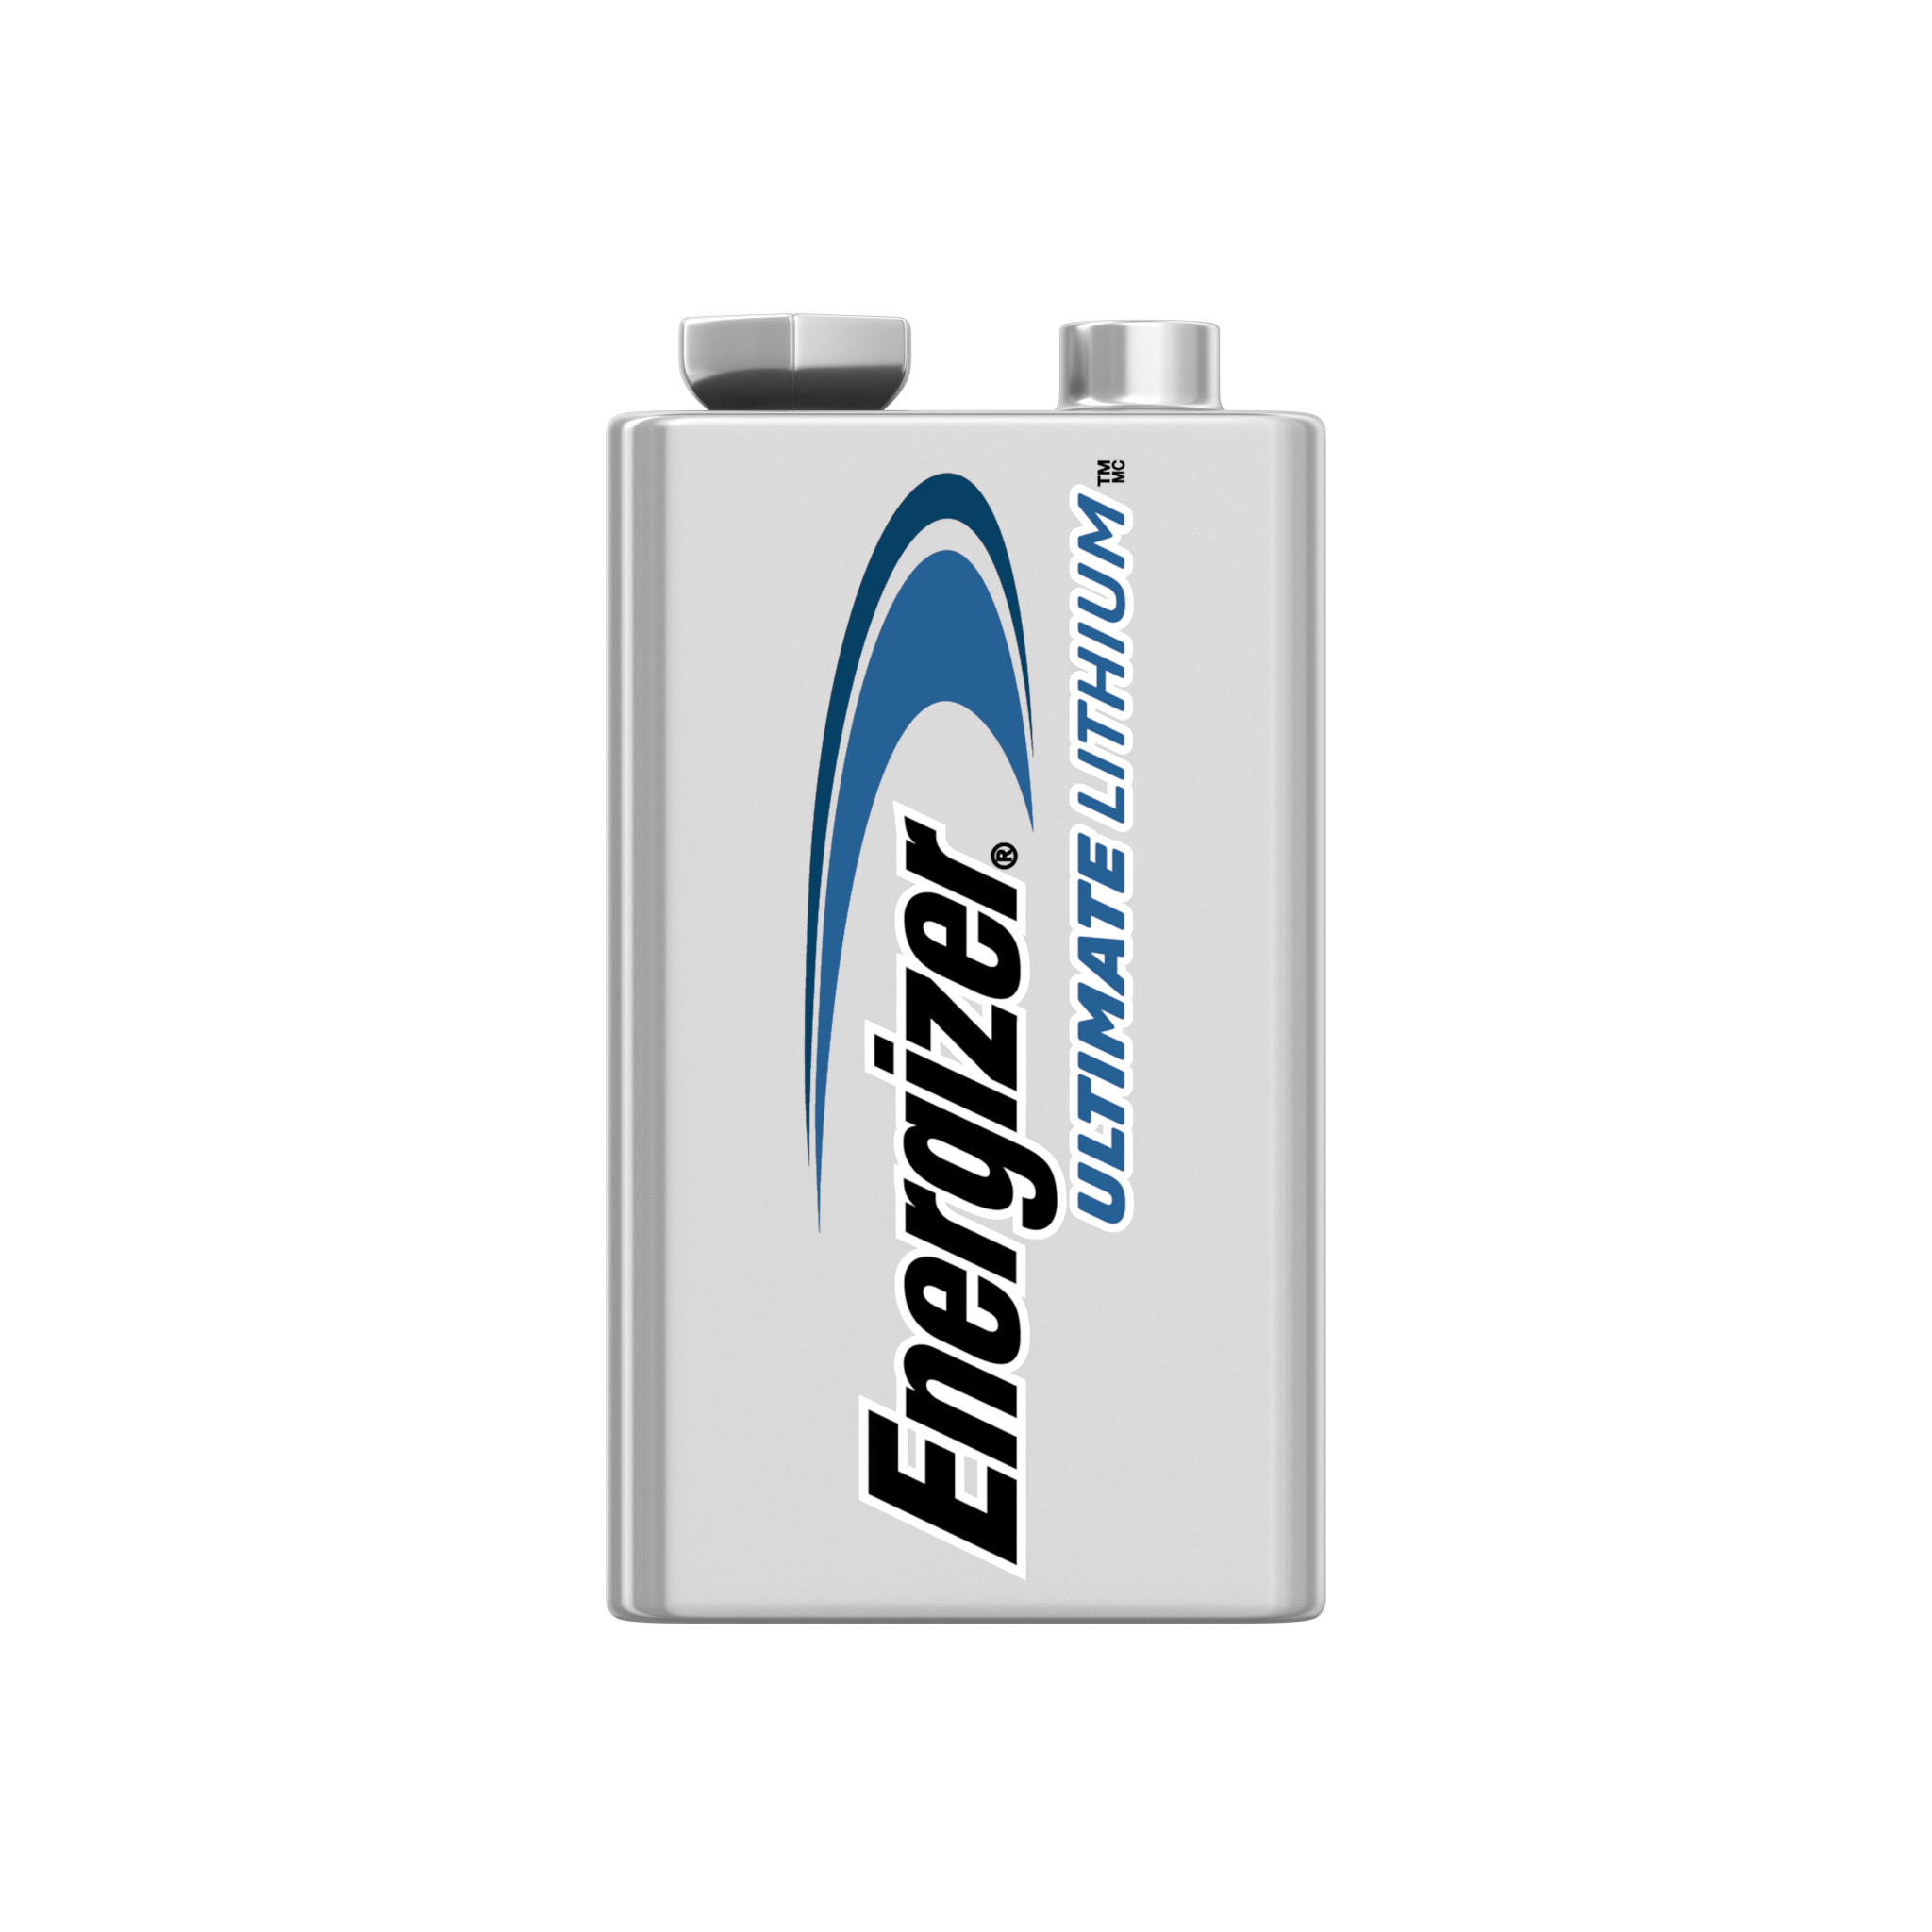 BATTERY, 9V LITHIUM ENERGIZER, EACH